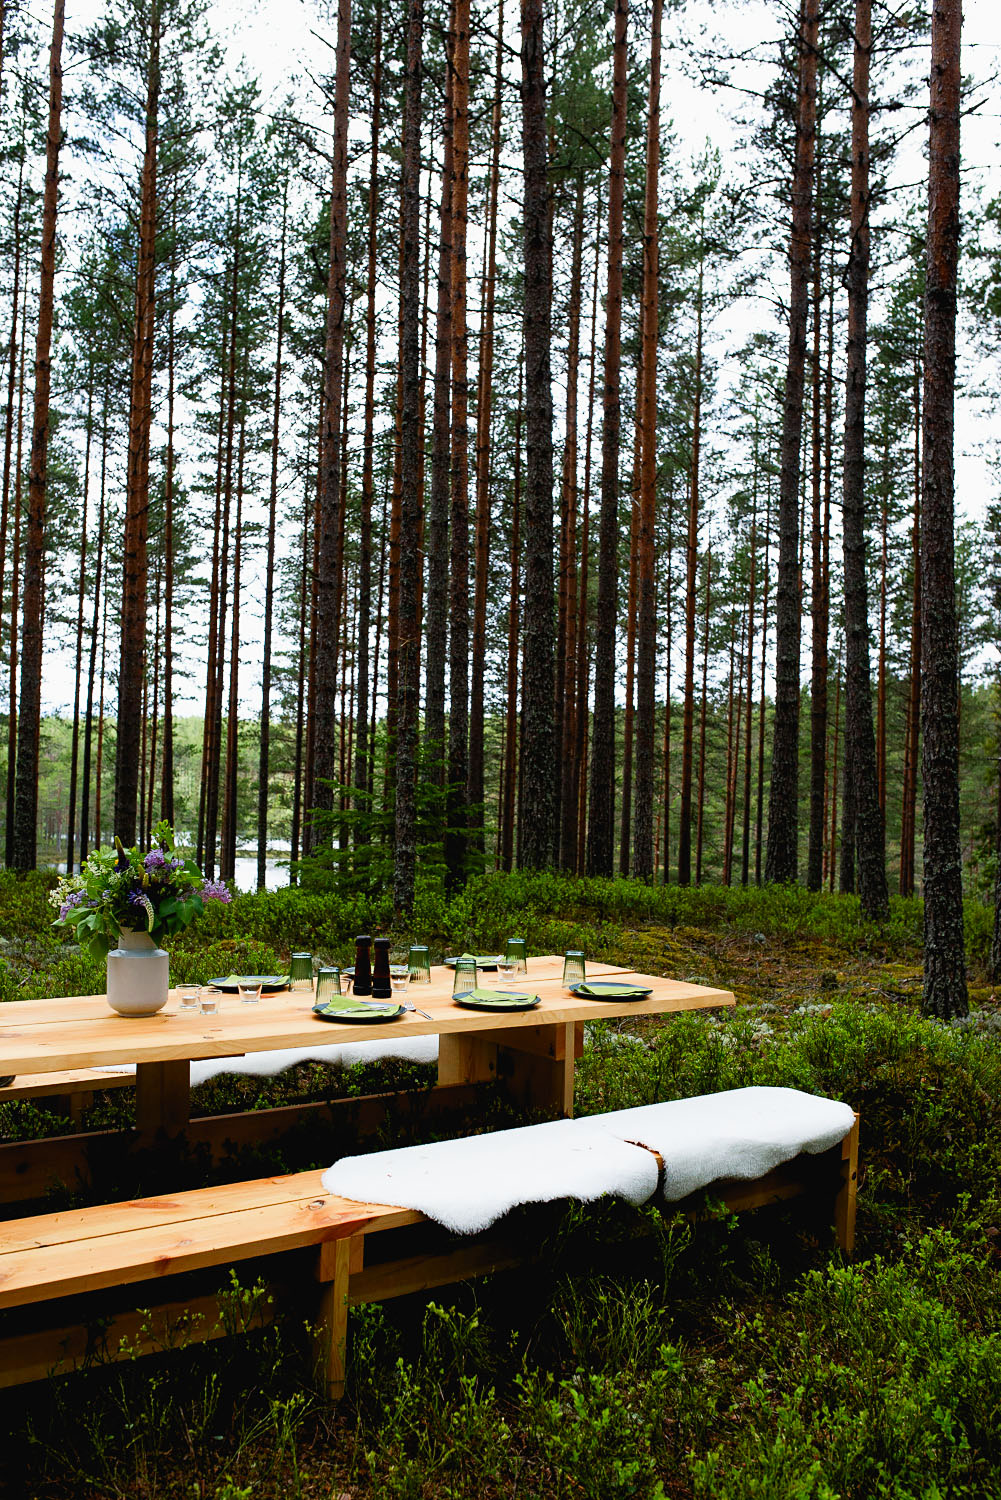 The Edible Country table, a lunch in the forest concept launched by Visit Sweden #mondomulia